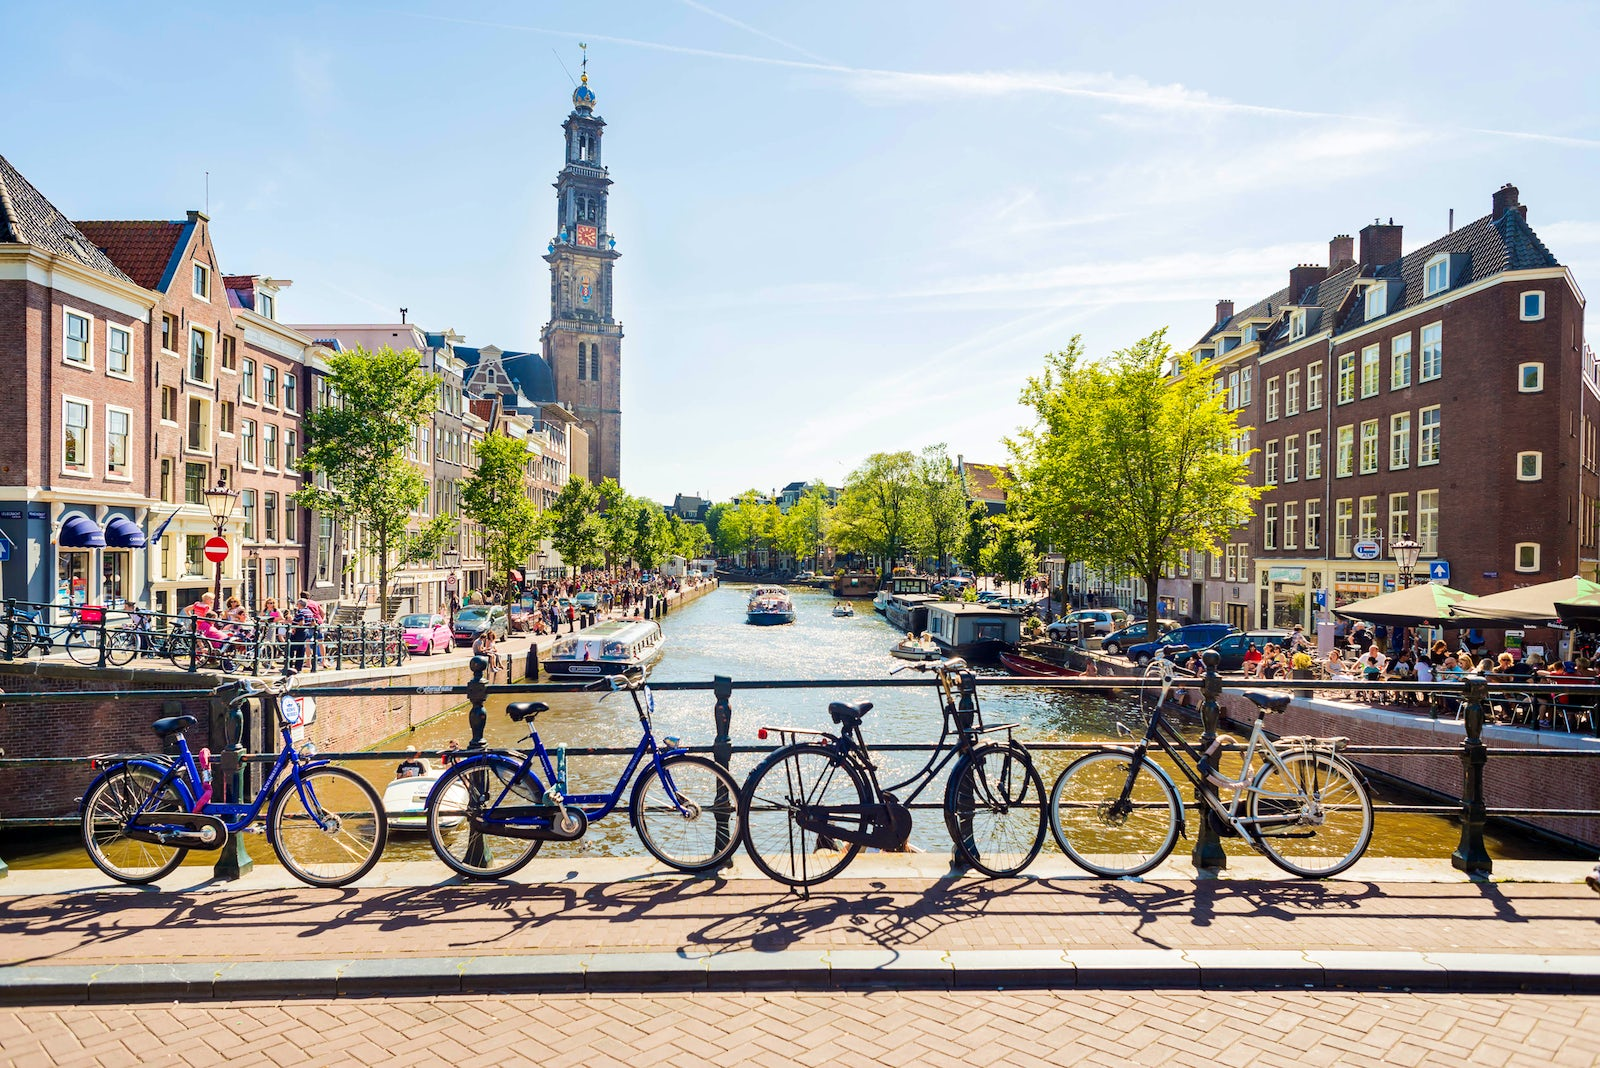 !i18n:es:data.cities:amsterdam.picture.caption